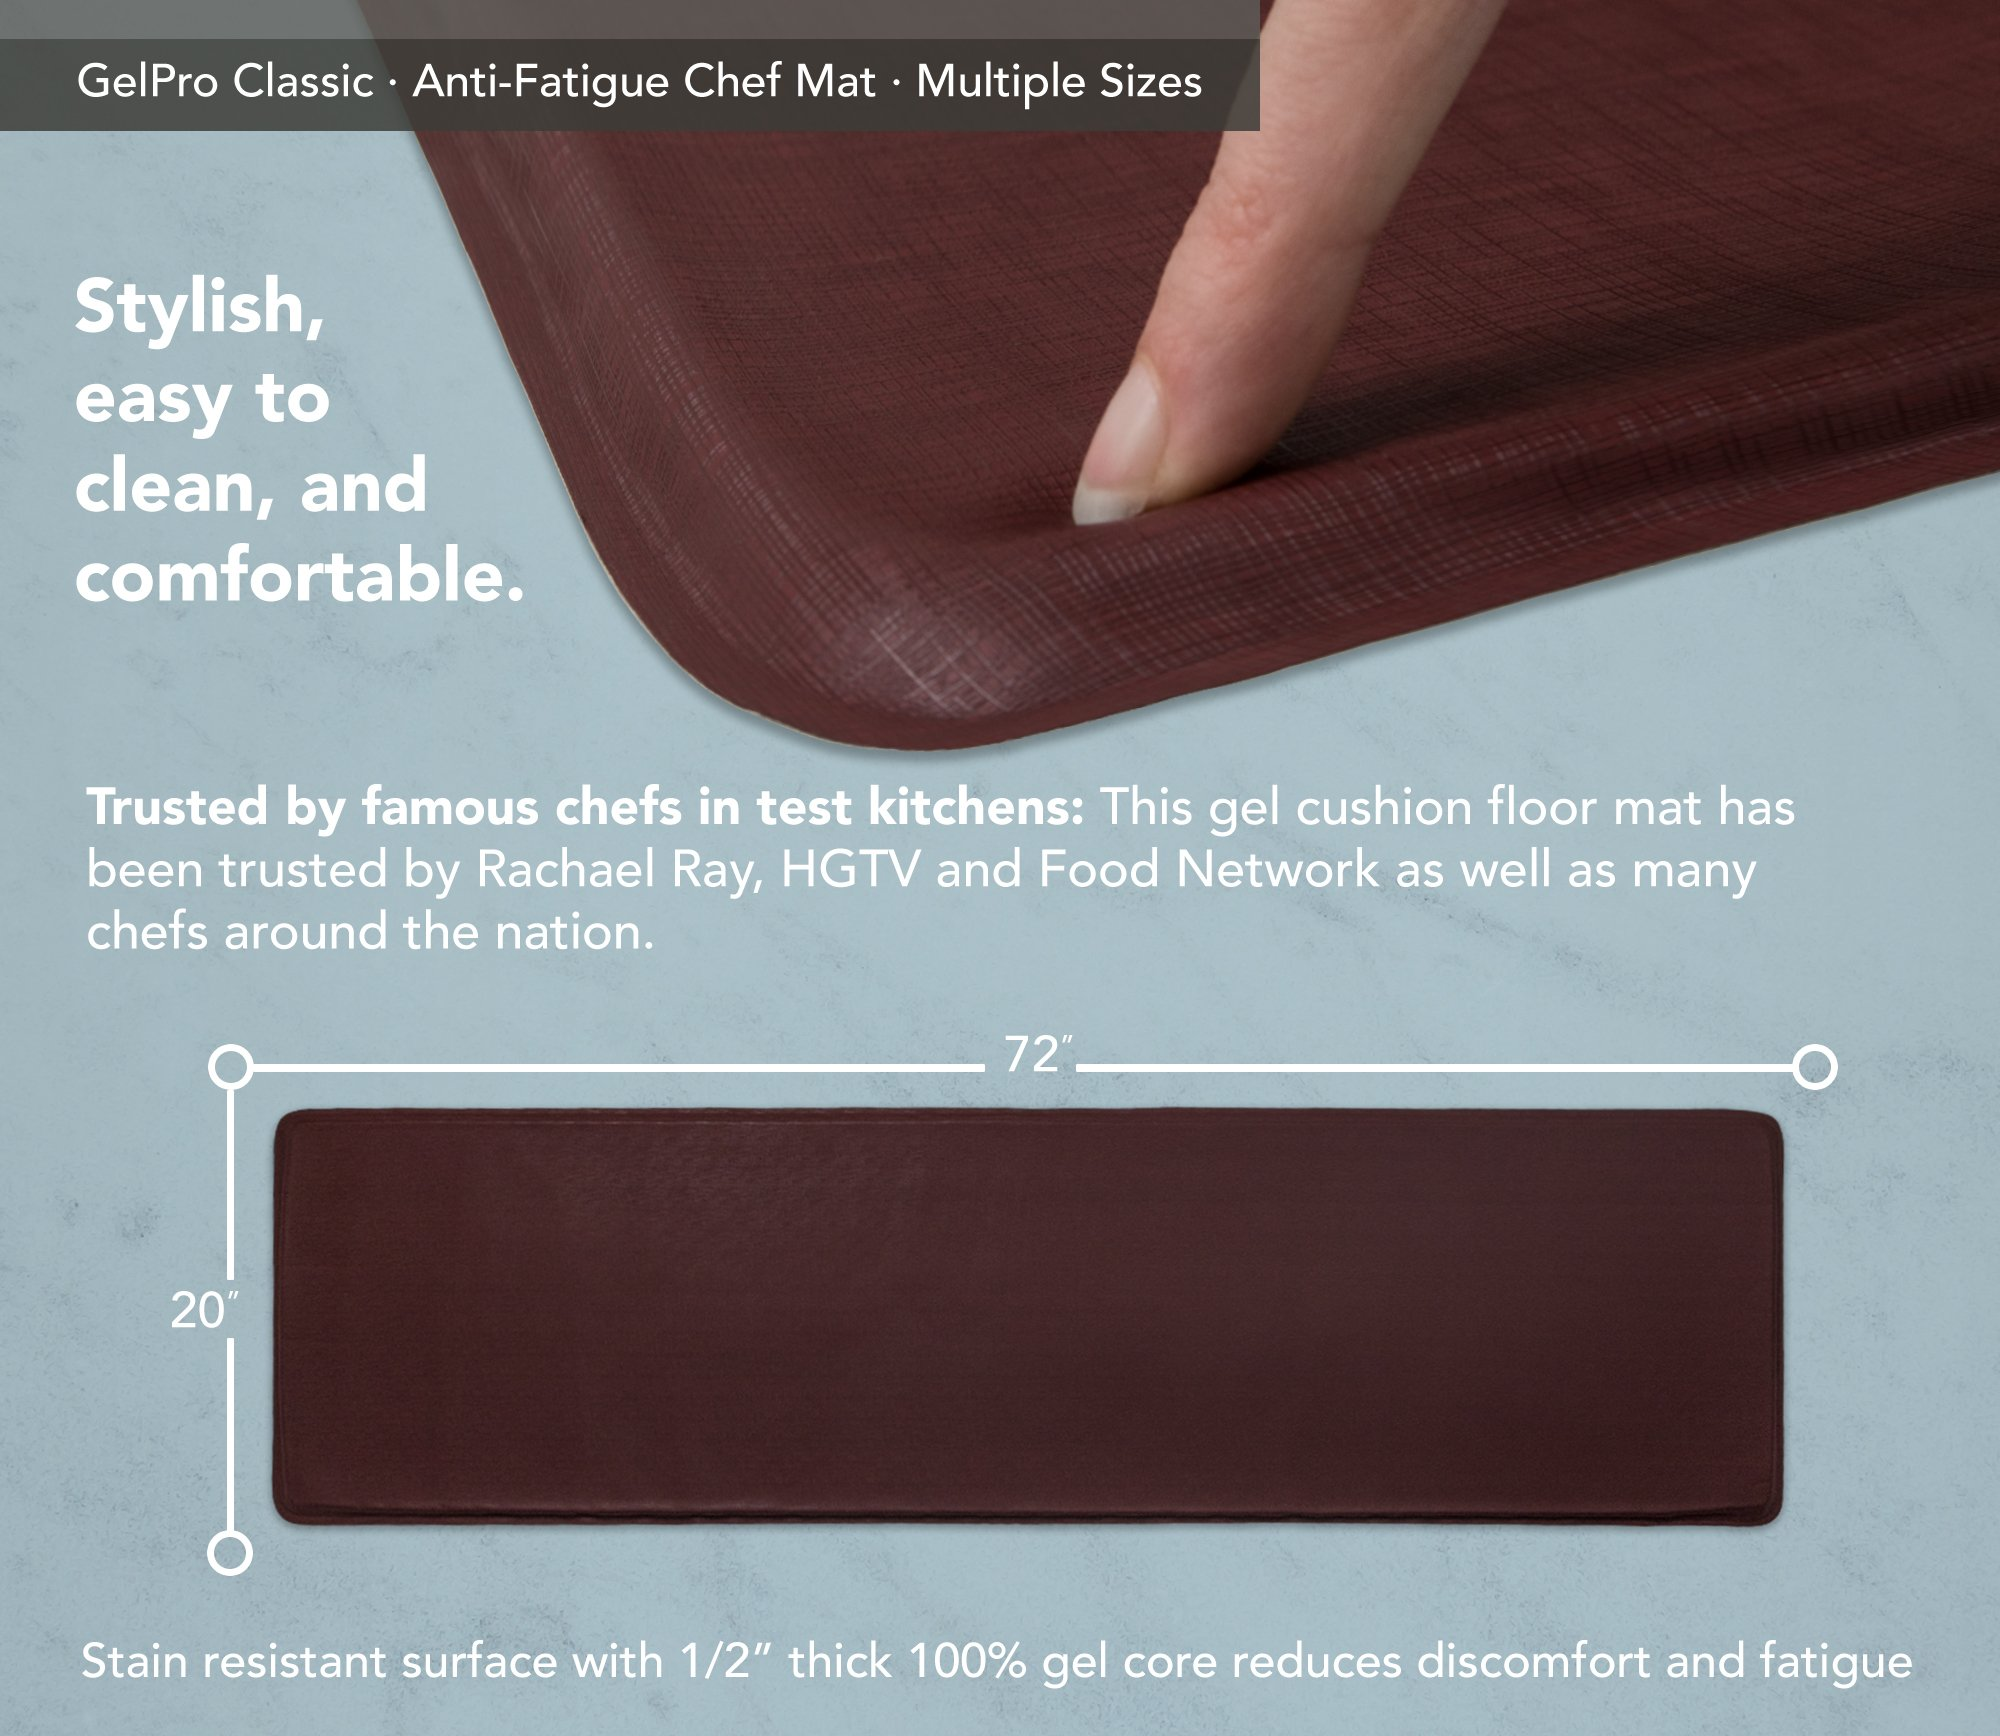 """GelPro Classic Anti-Fatigue Kitchen Comfort Chef Floor Mat, 20x72"""", Linen Cardinal Stain Resistant Surface with ½"""" gel core for health & wellness by GelPro (Image #3)"""